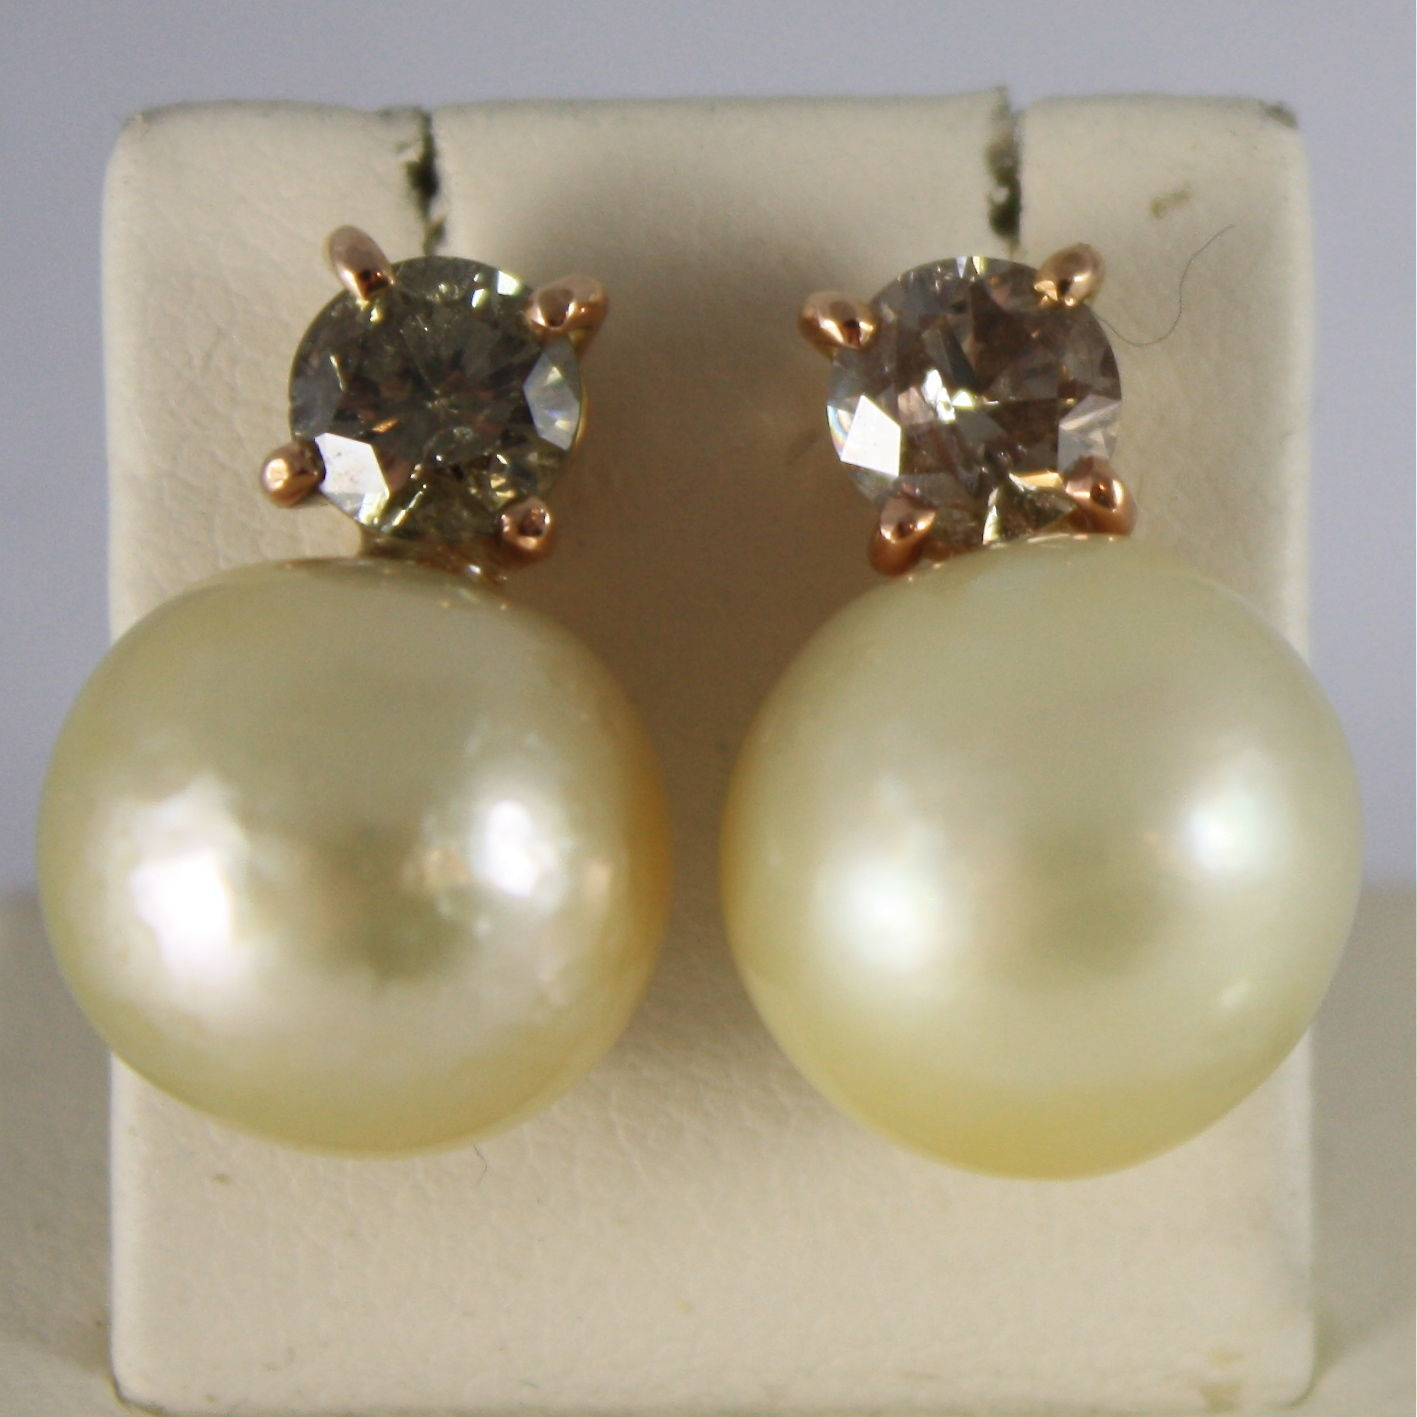 18K ROSE GOLD EARRINGS BROWN DIAMONDS CT1.48 CREAM SOUTH SEA PEARL MADE IN ITALY